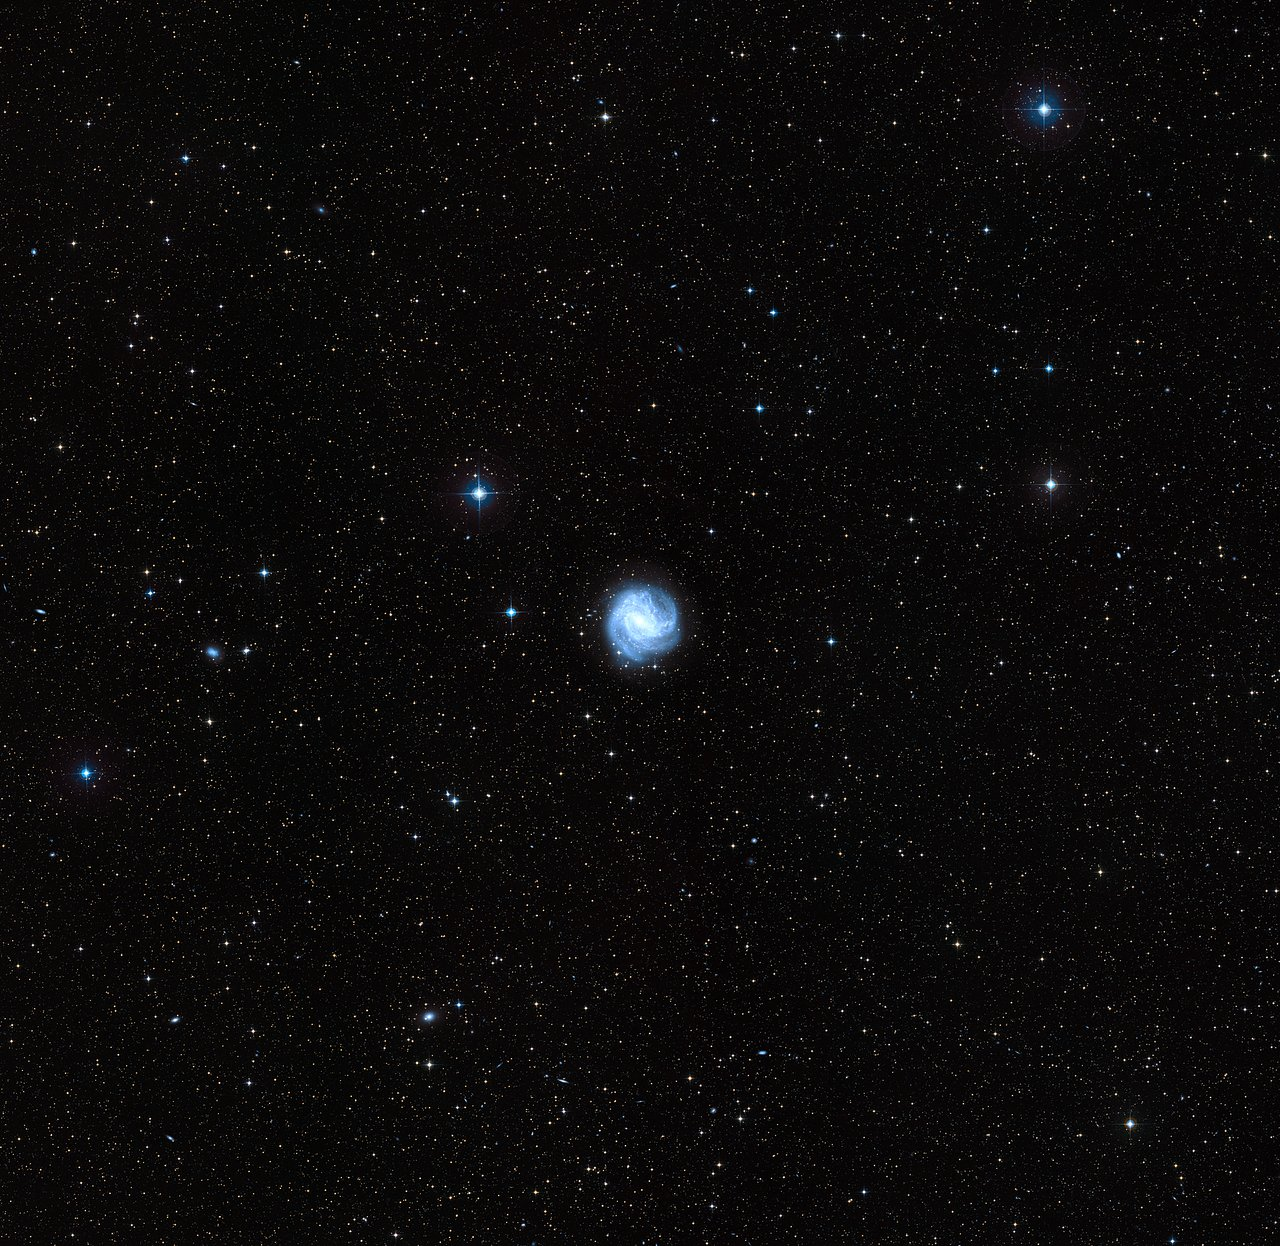 The sky around Messier 83